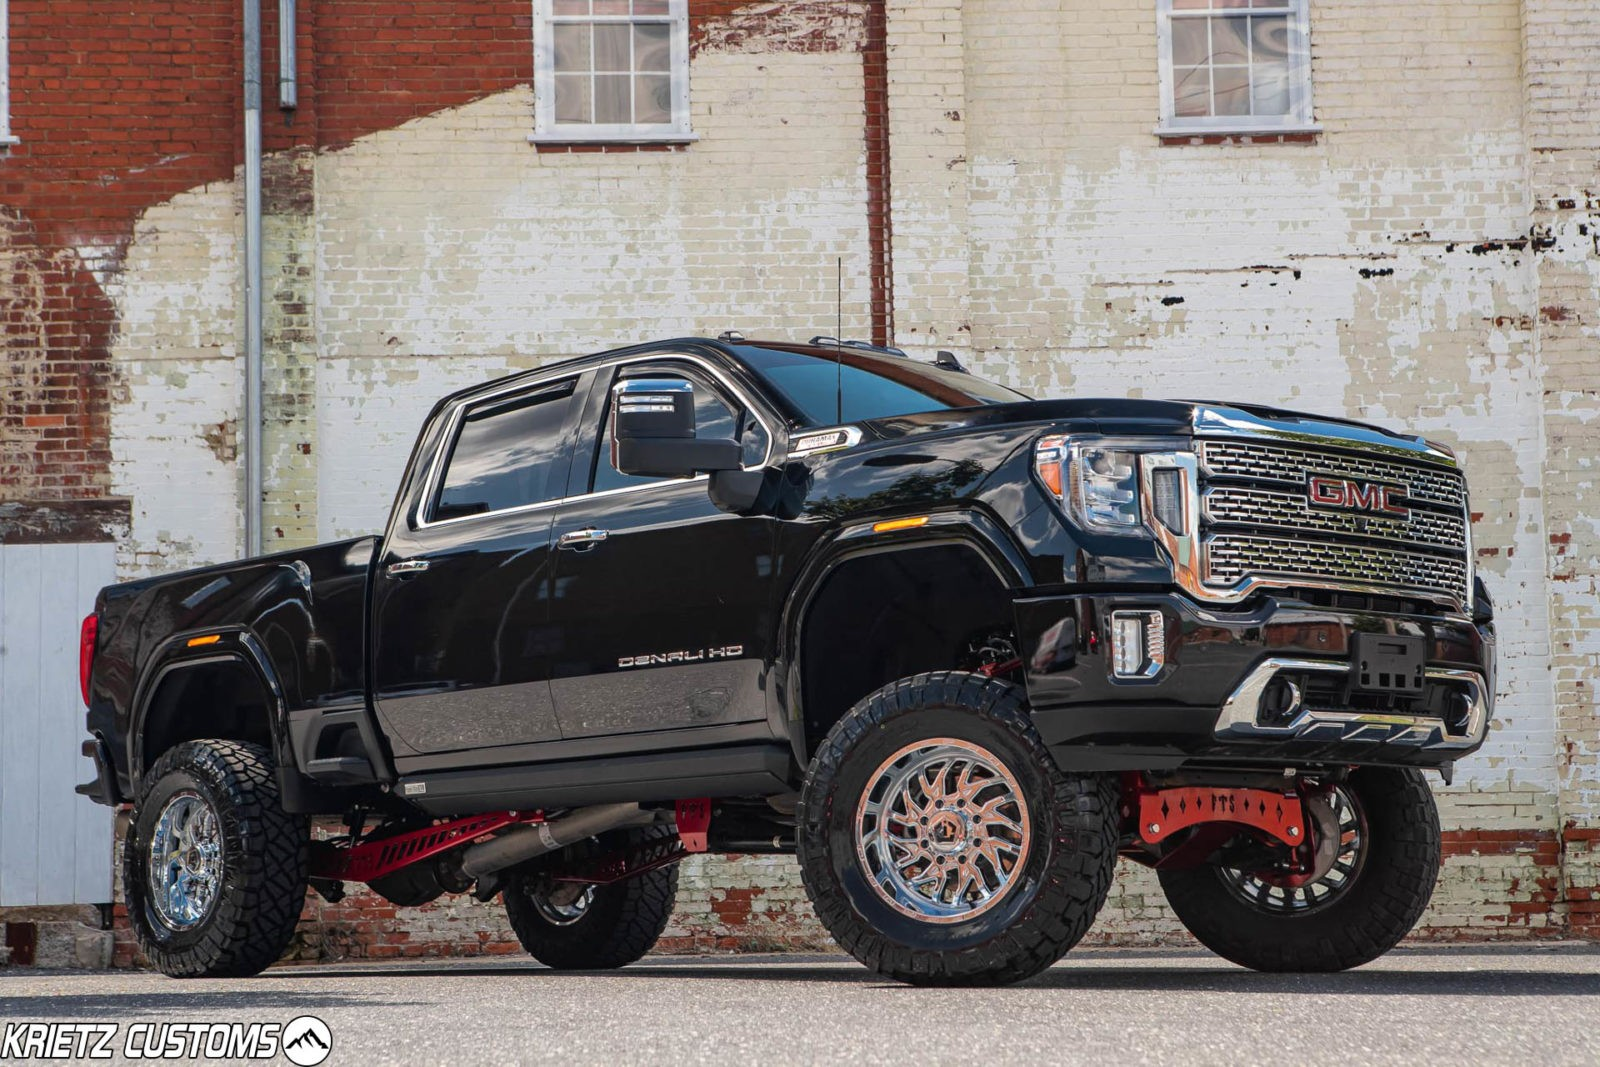 Lifted 2020 Gmc Sierra 2500hd Denali With 7 9 Inch Full Throttle Suspension Lift Kit And 20 10 Tis 544c Wheels Krietz Auto